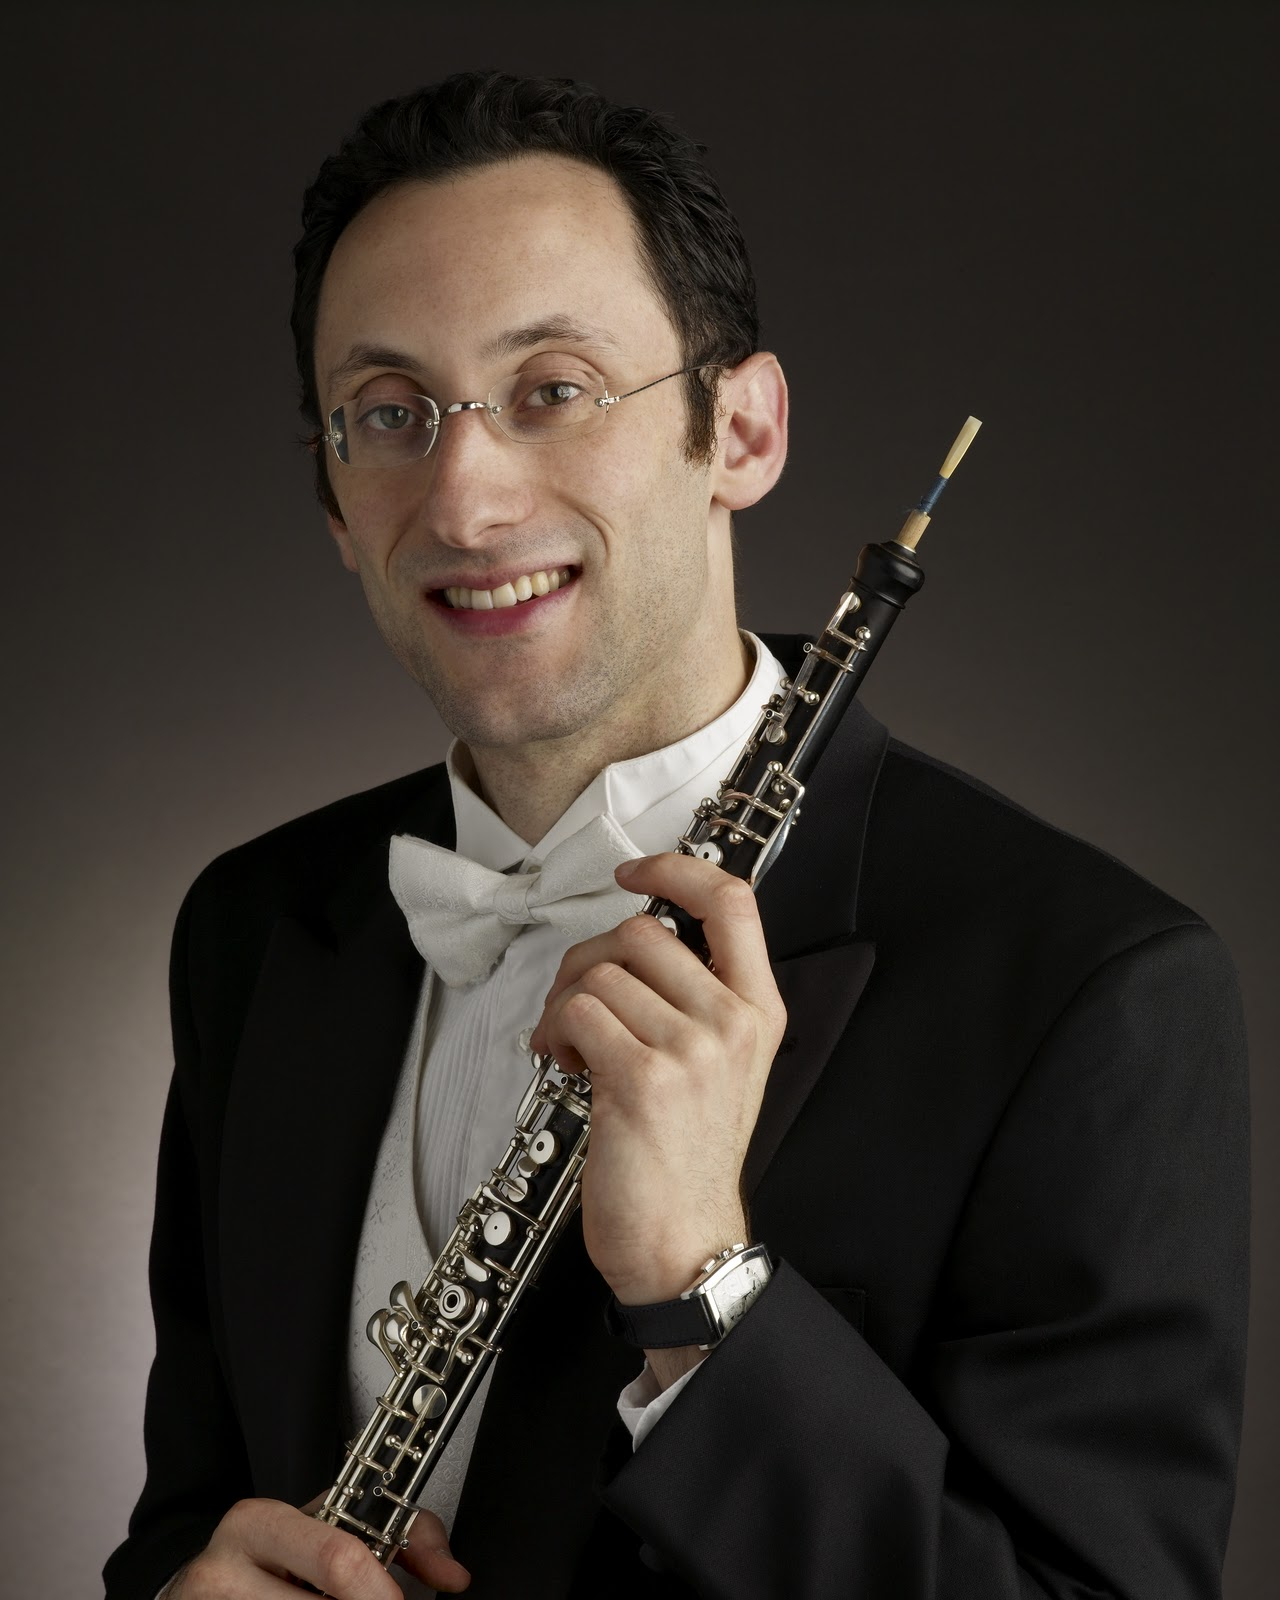 the cleveland orchestra blog instantencore did you know that massimo la rosa the cleveland orchestra s principal trombone previously was a member of the opera orchestra at the famous la fenice